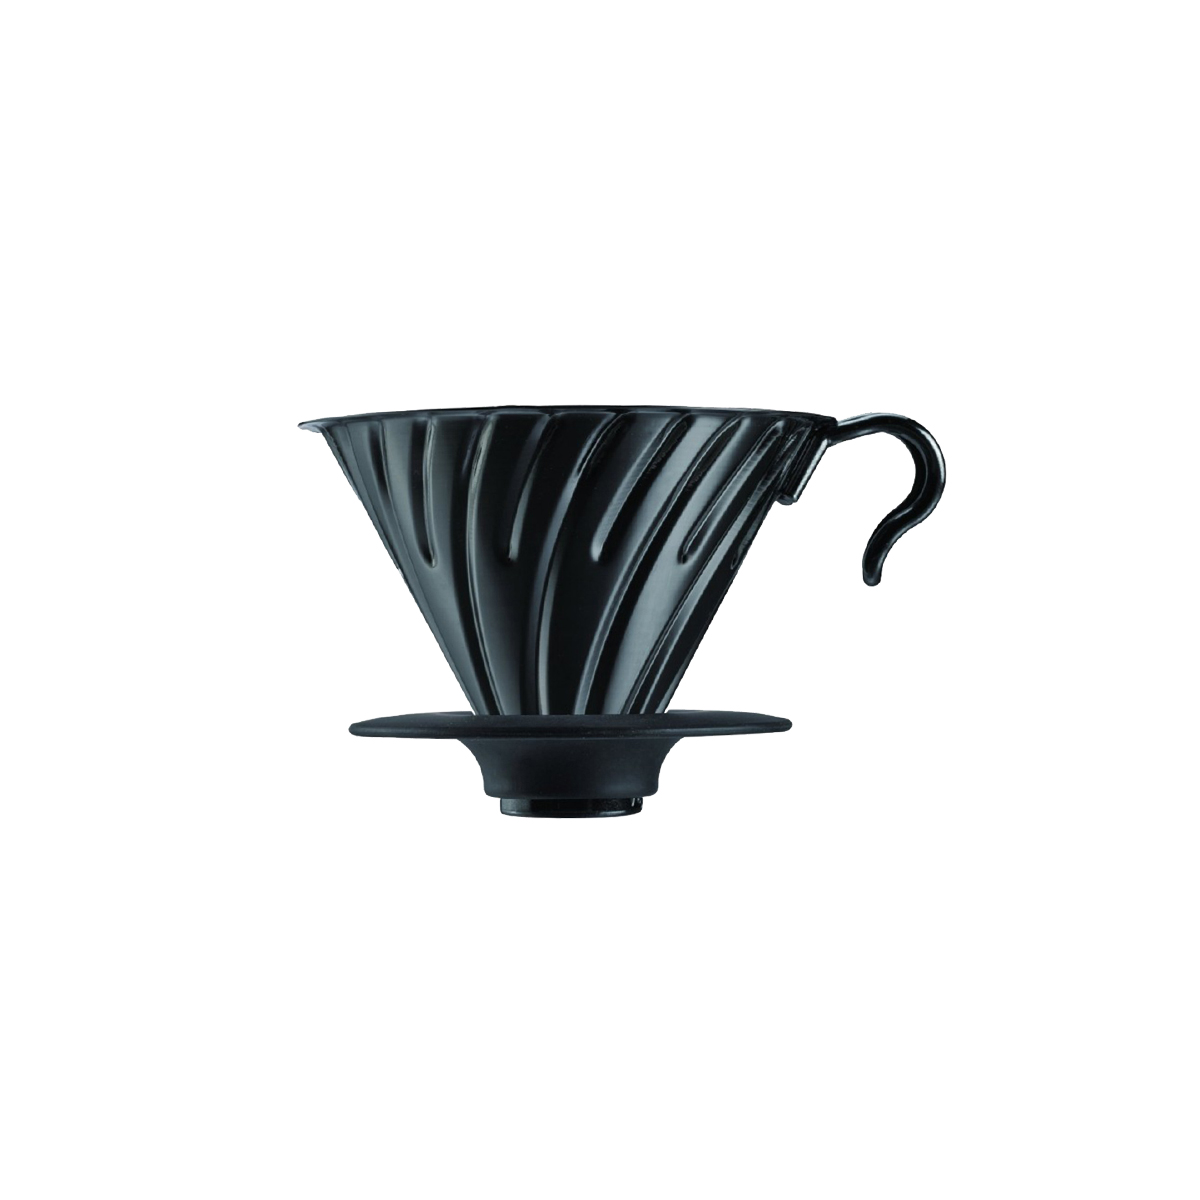 Belanja Hario Indonesia Online Shop Coffee Mill Prism Msa2sv V60 Metal Dripper Black 02 Vdm 02bc